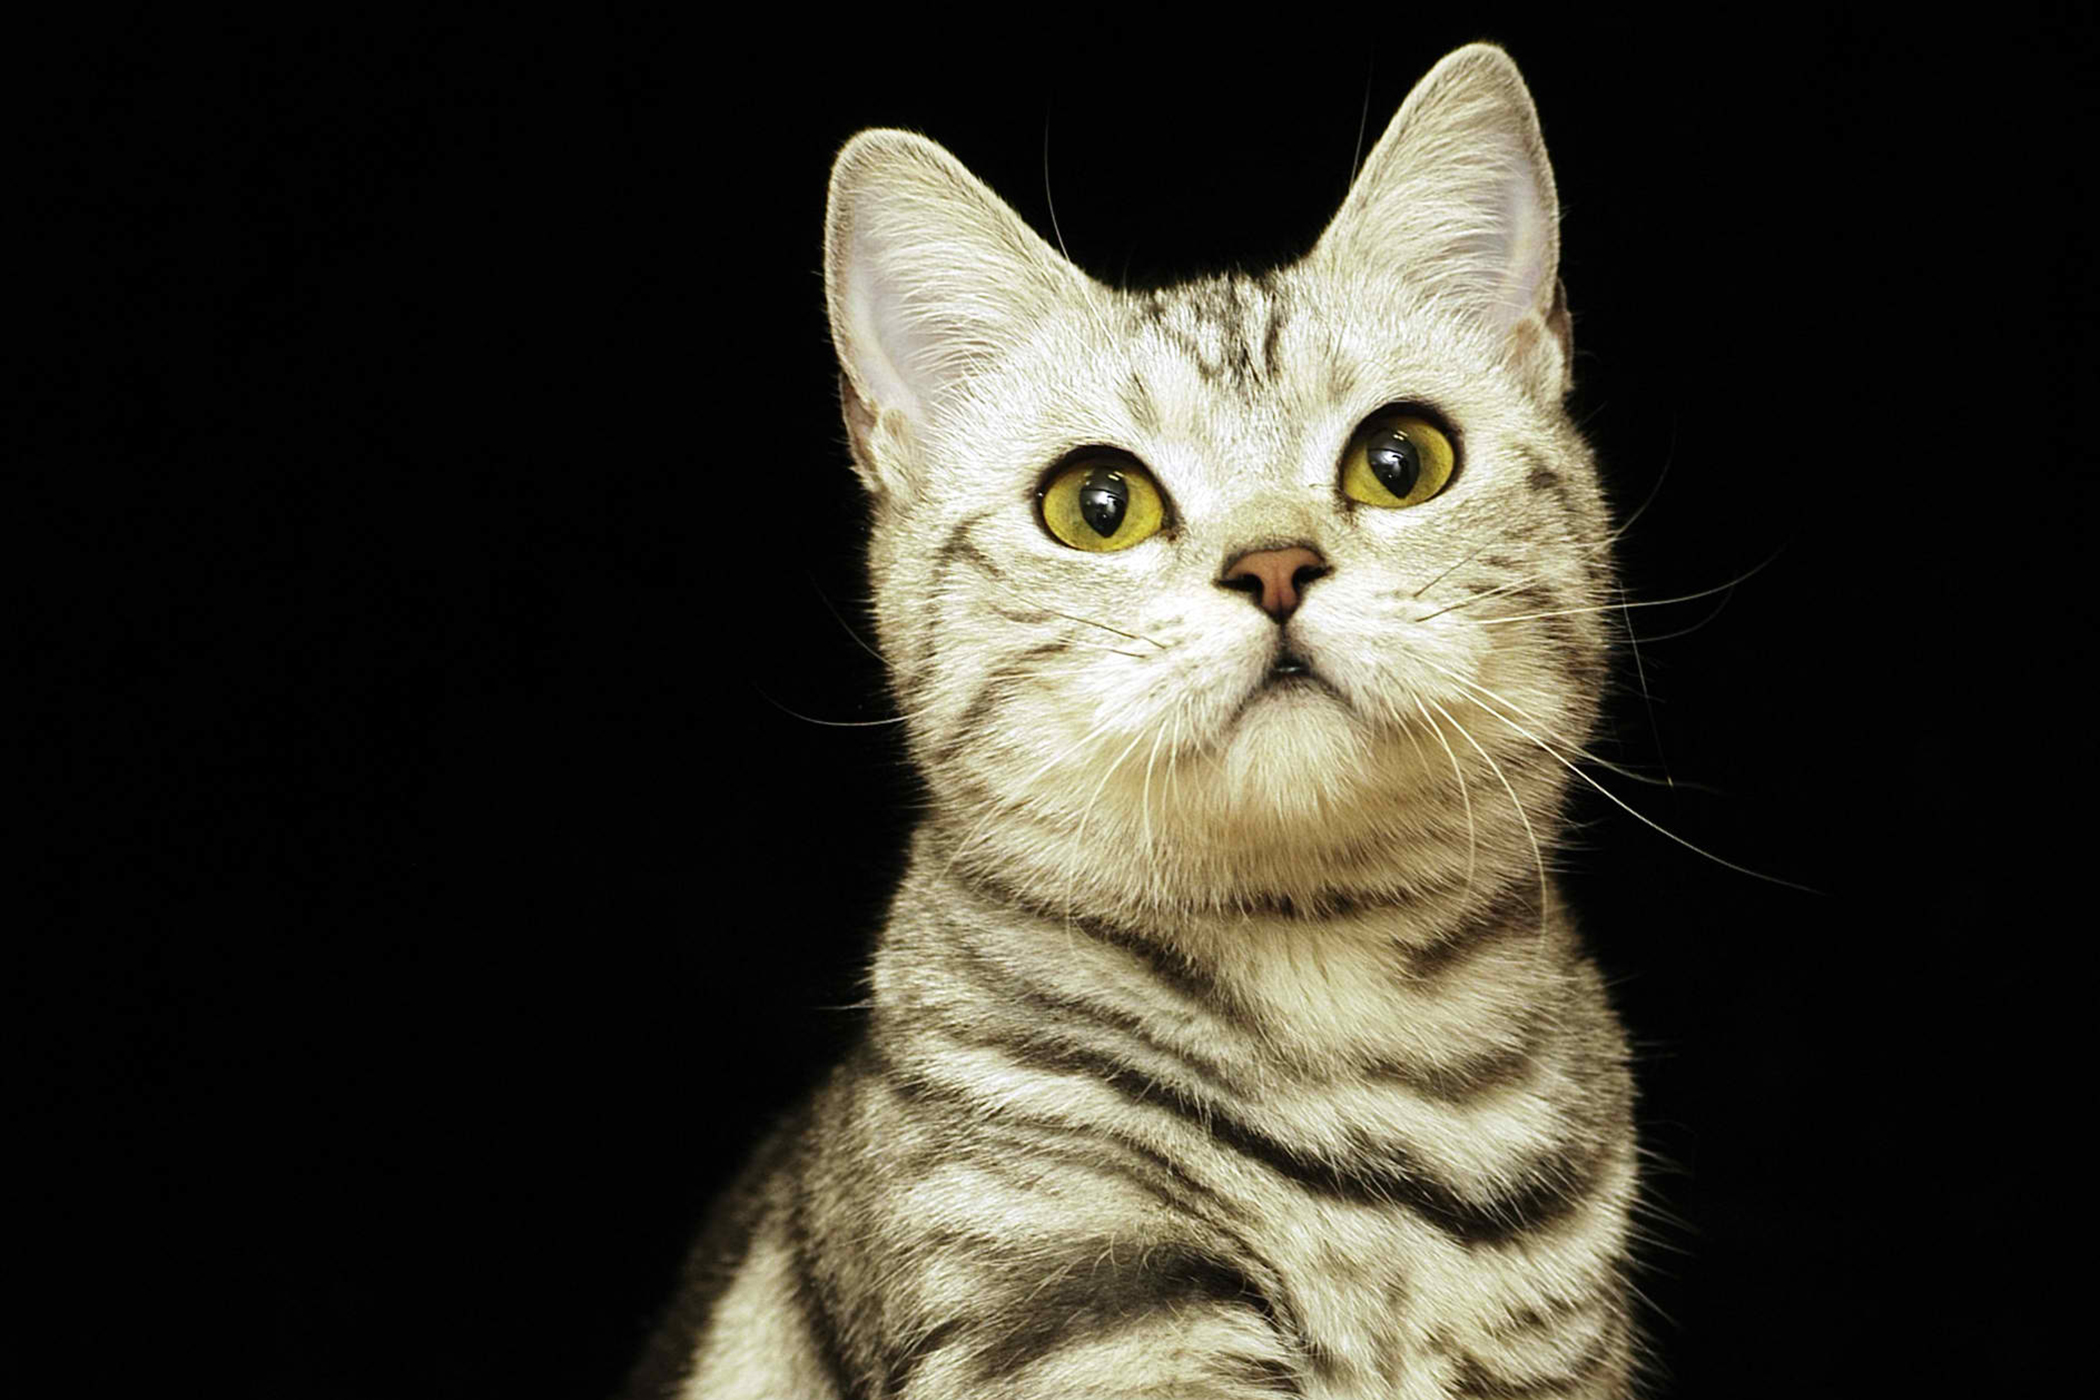 Allergic Shock in Cats